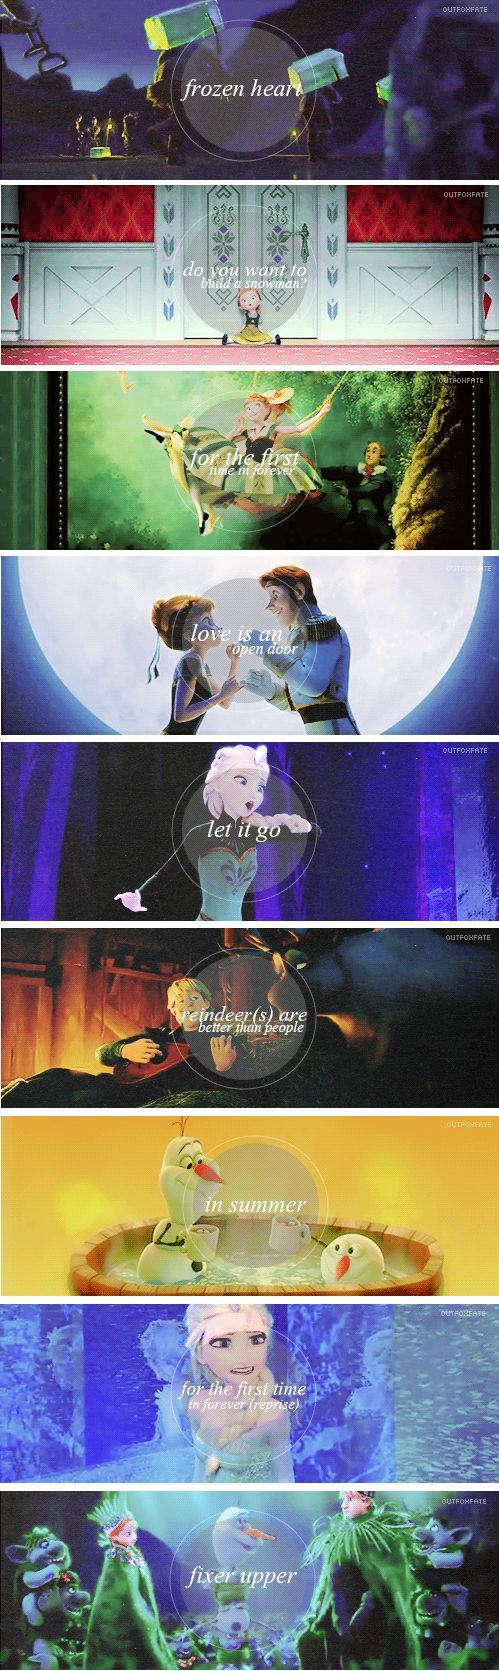 Songs from Frozen the movie